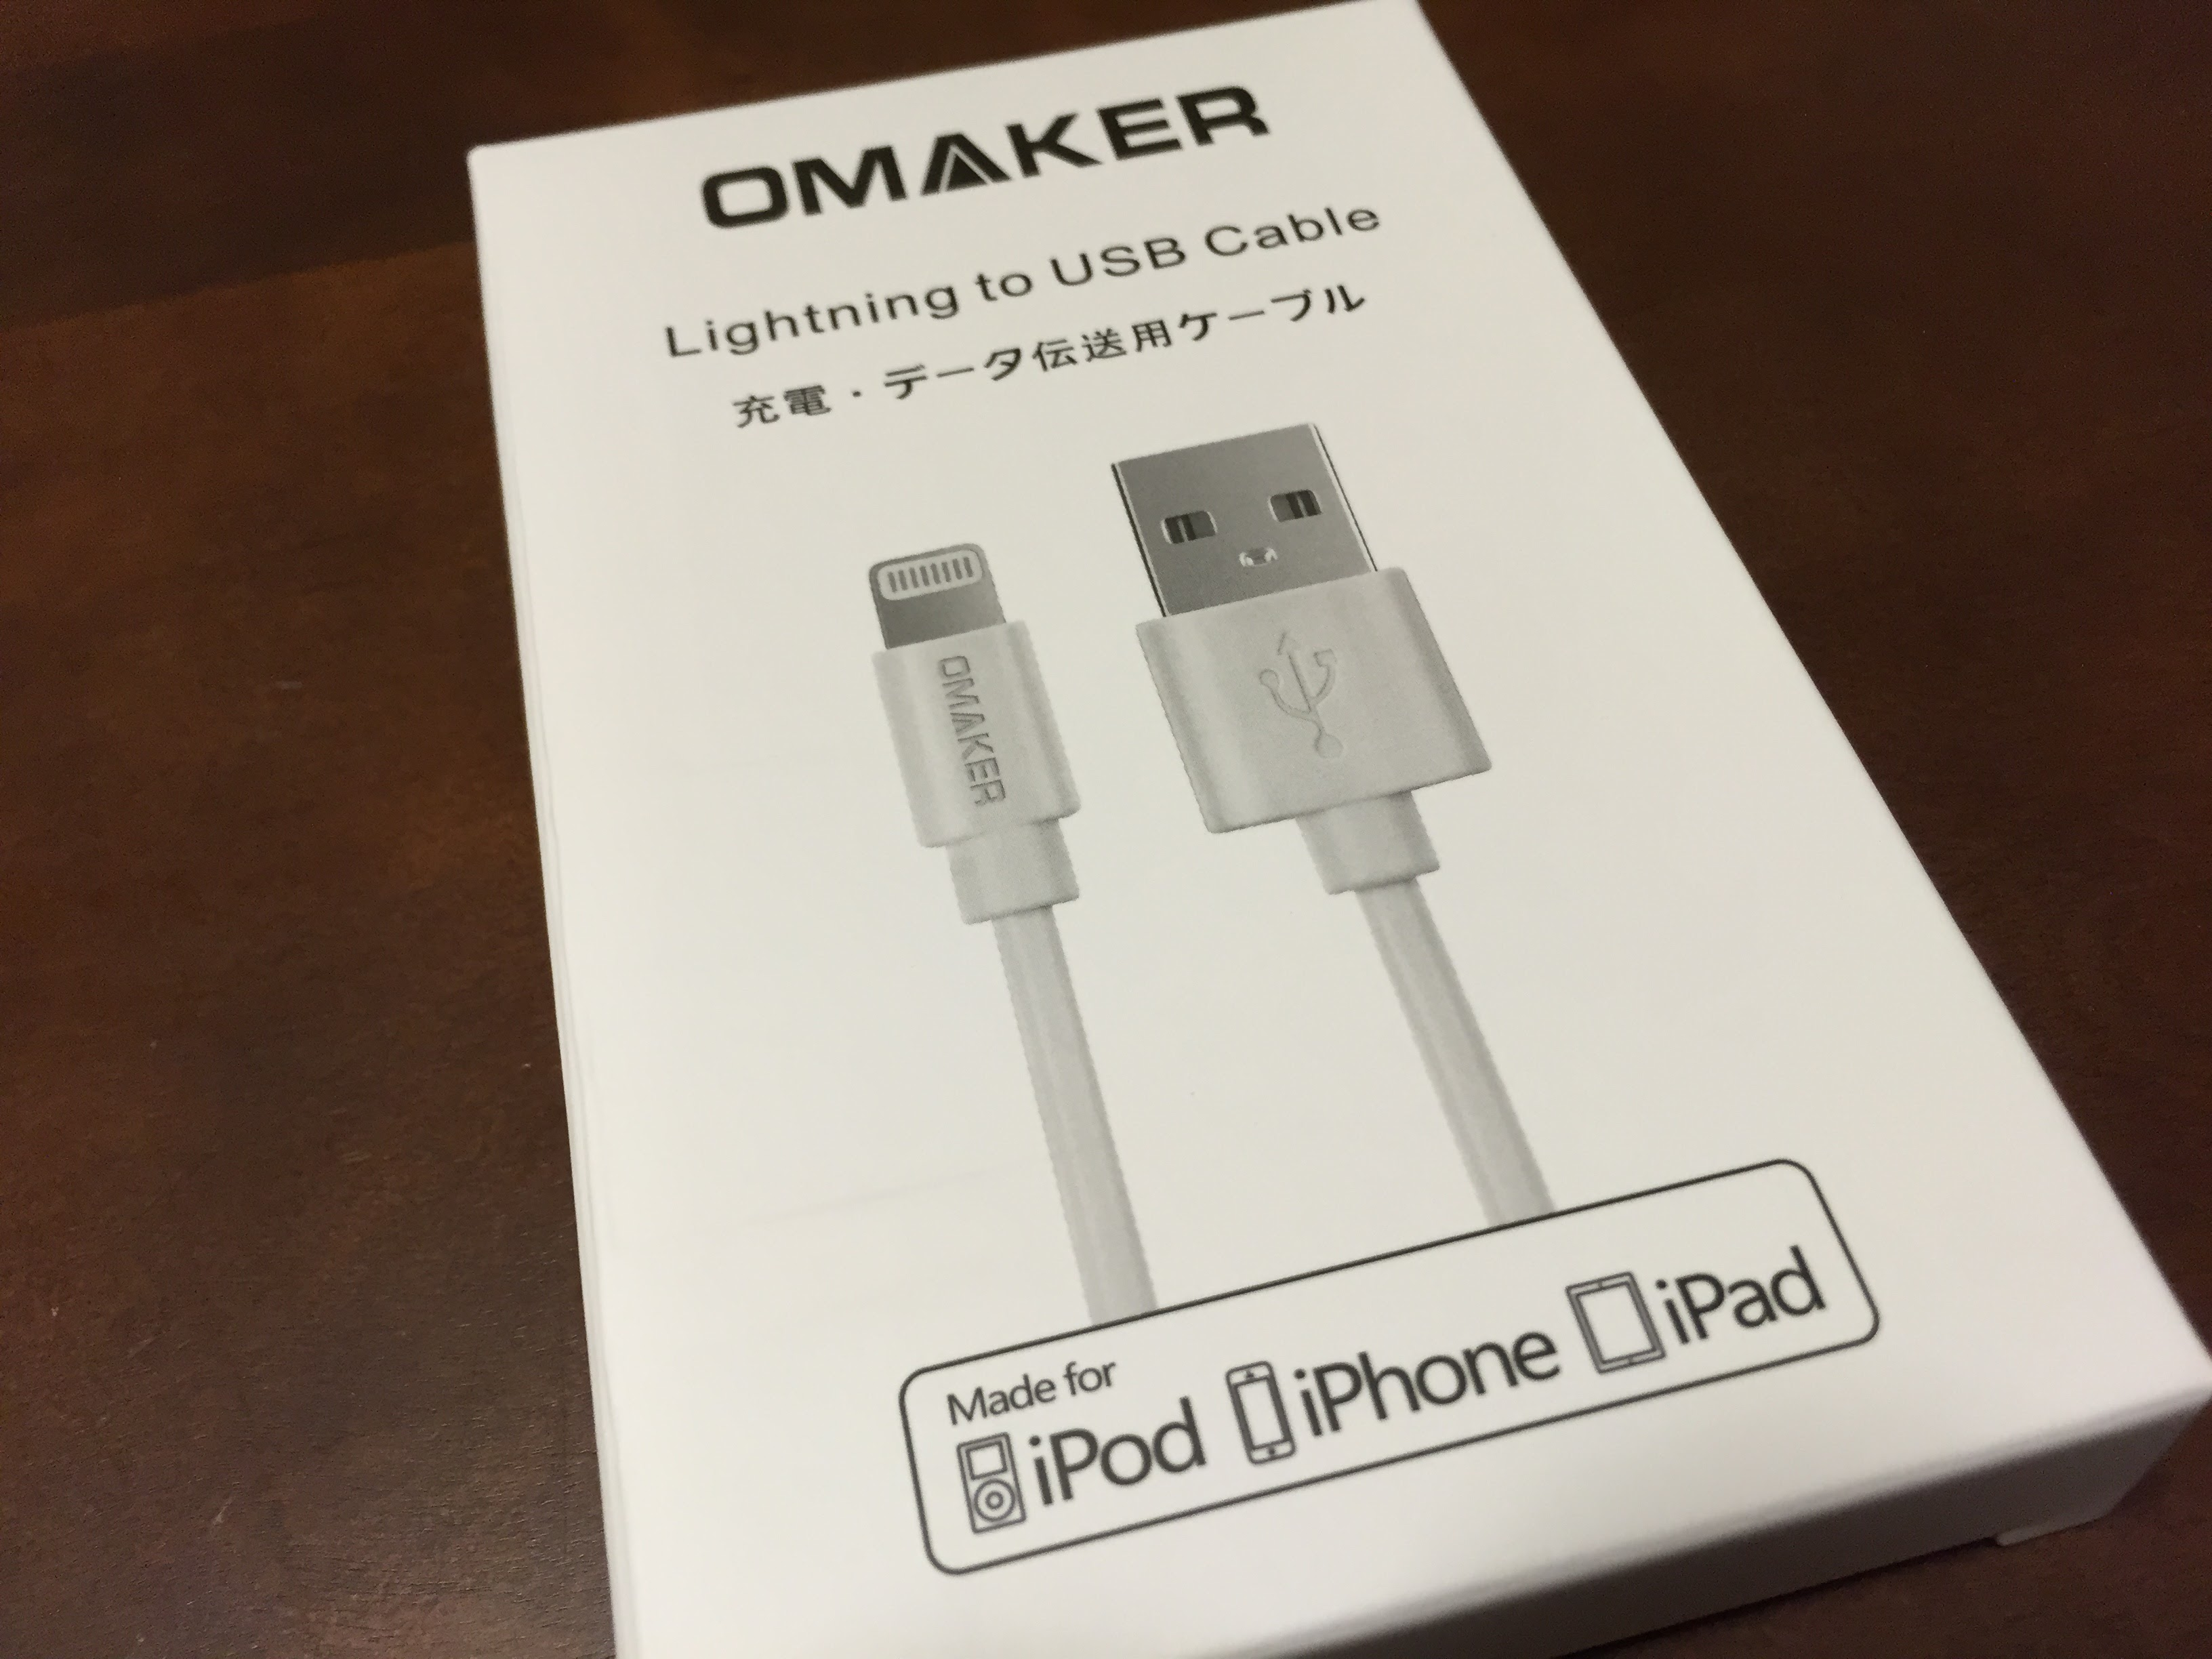 0918-201507_Omaker Lightning Cable 01